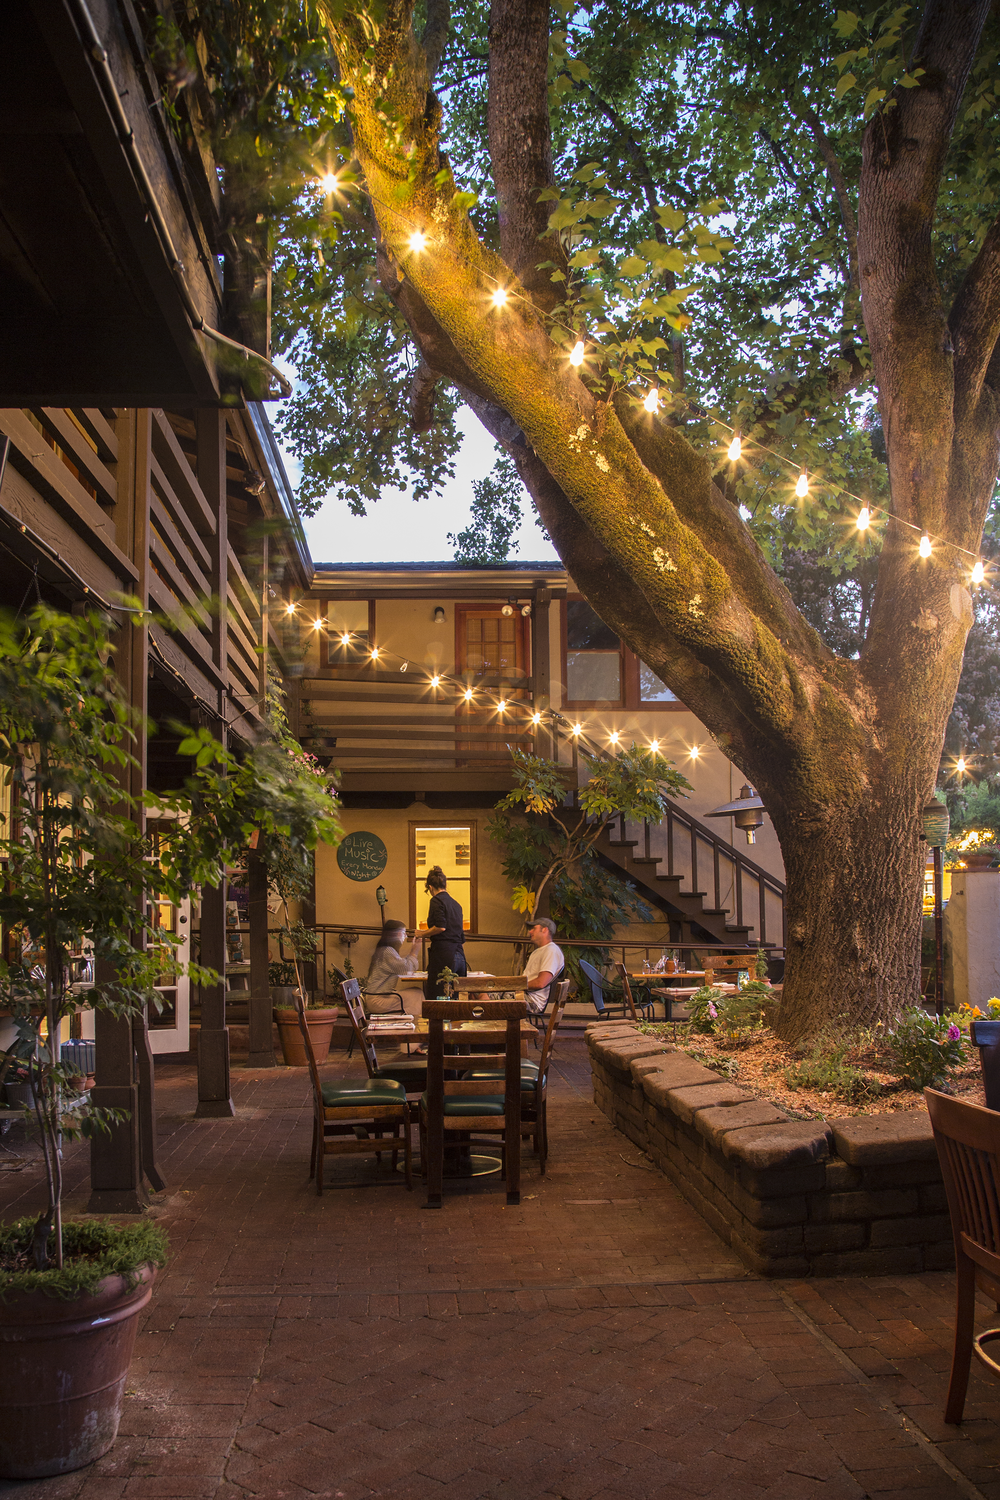 backyard_forestville_sonoma_county_restaurant_61_8069.png